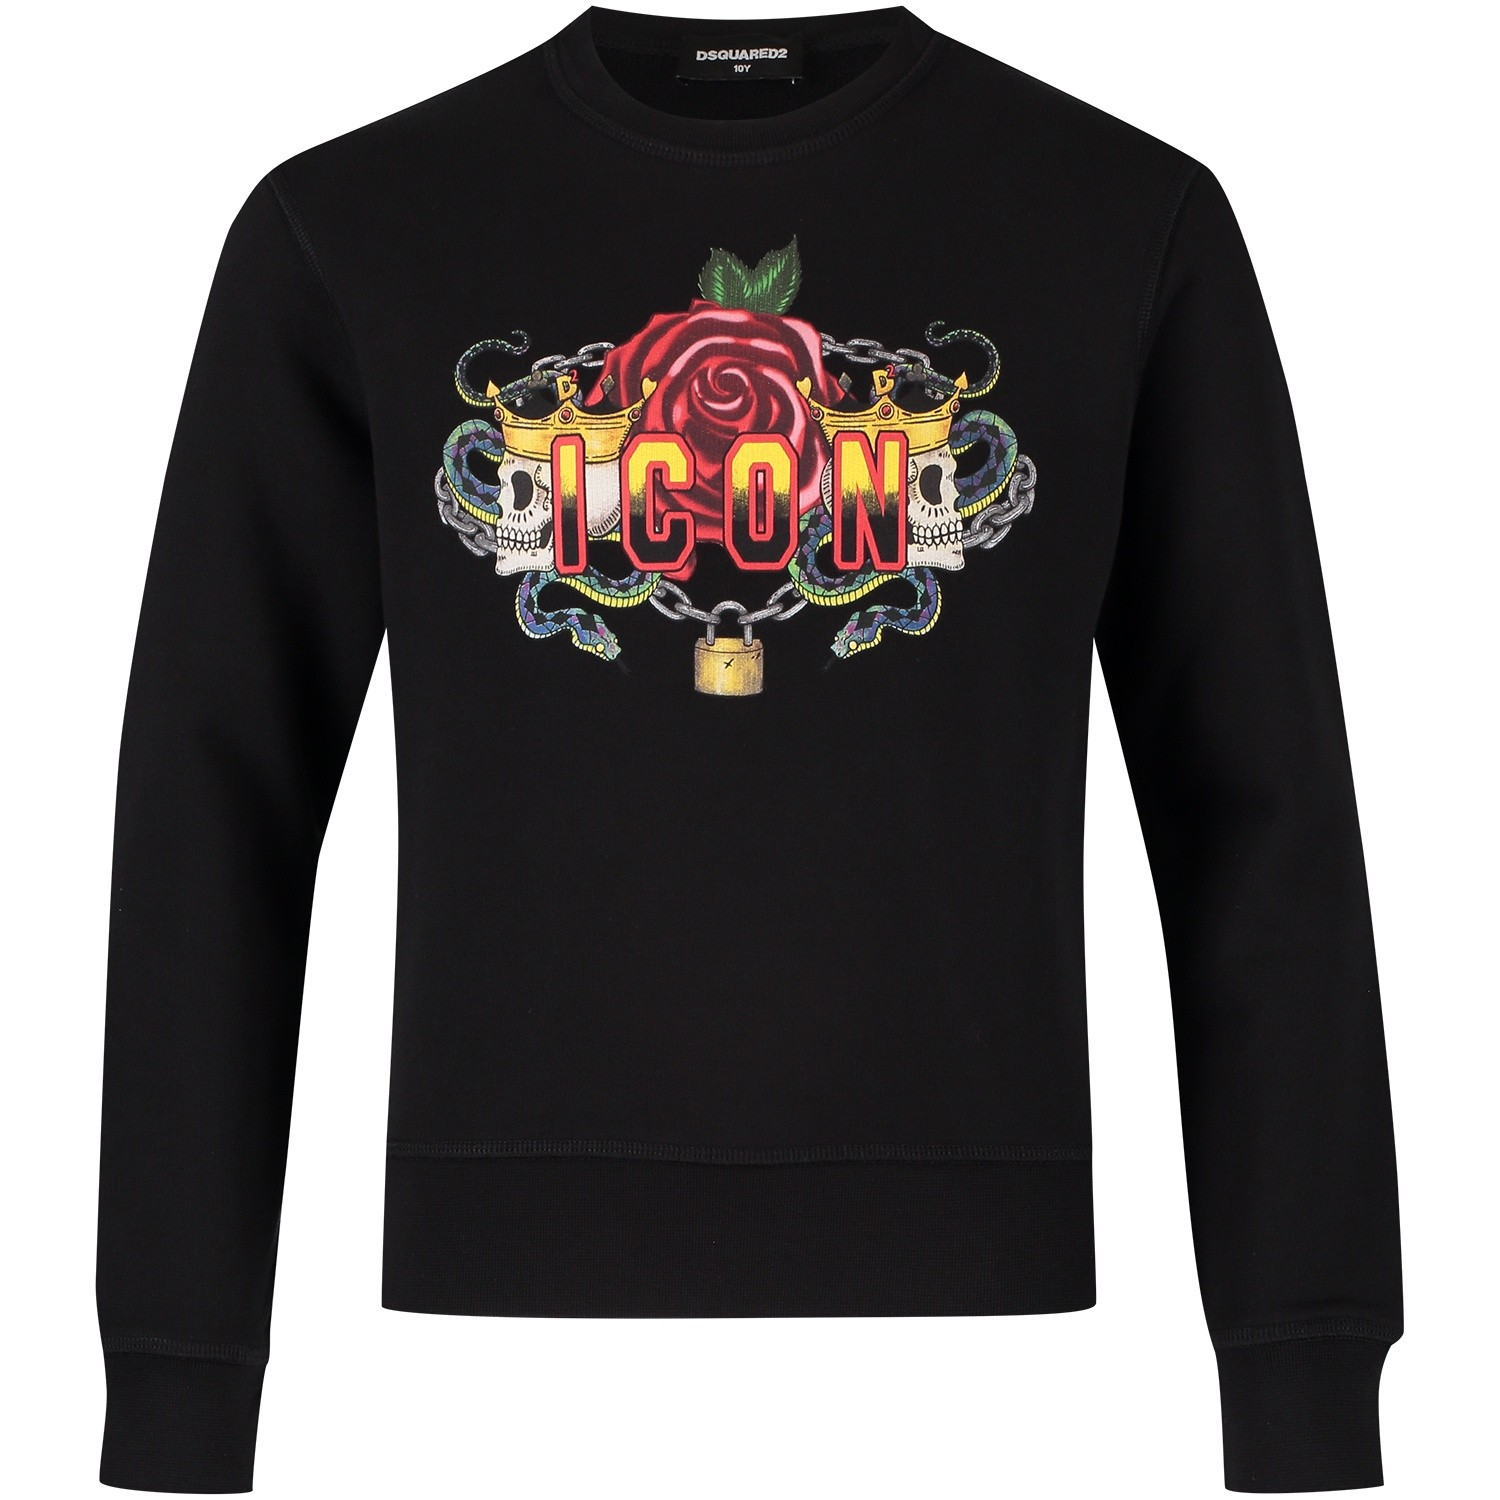 Picture of Dsquared2 DQ02W2 kids sweater black